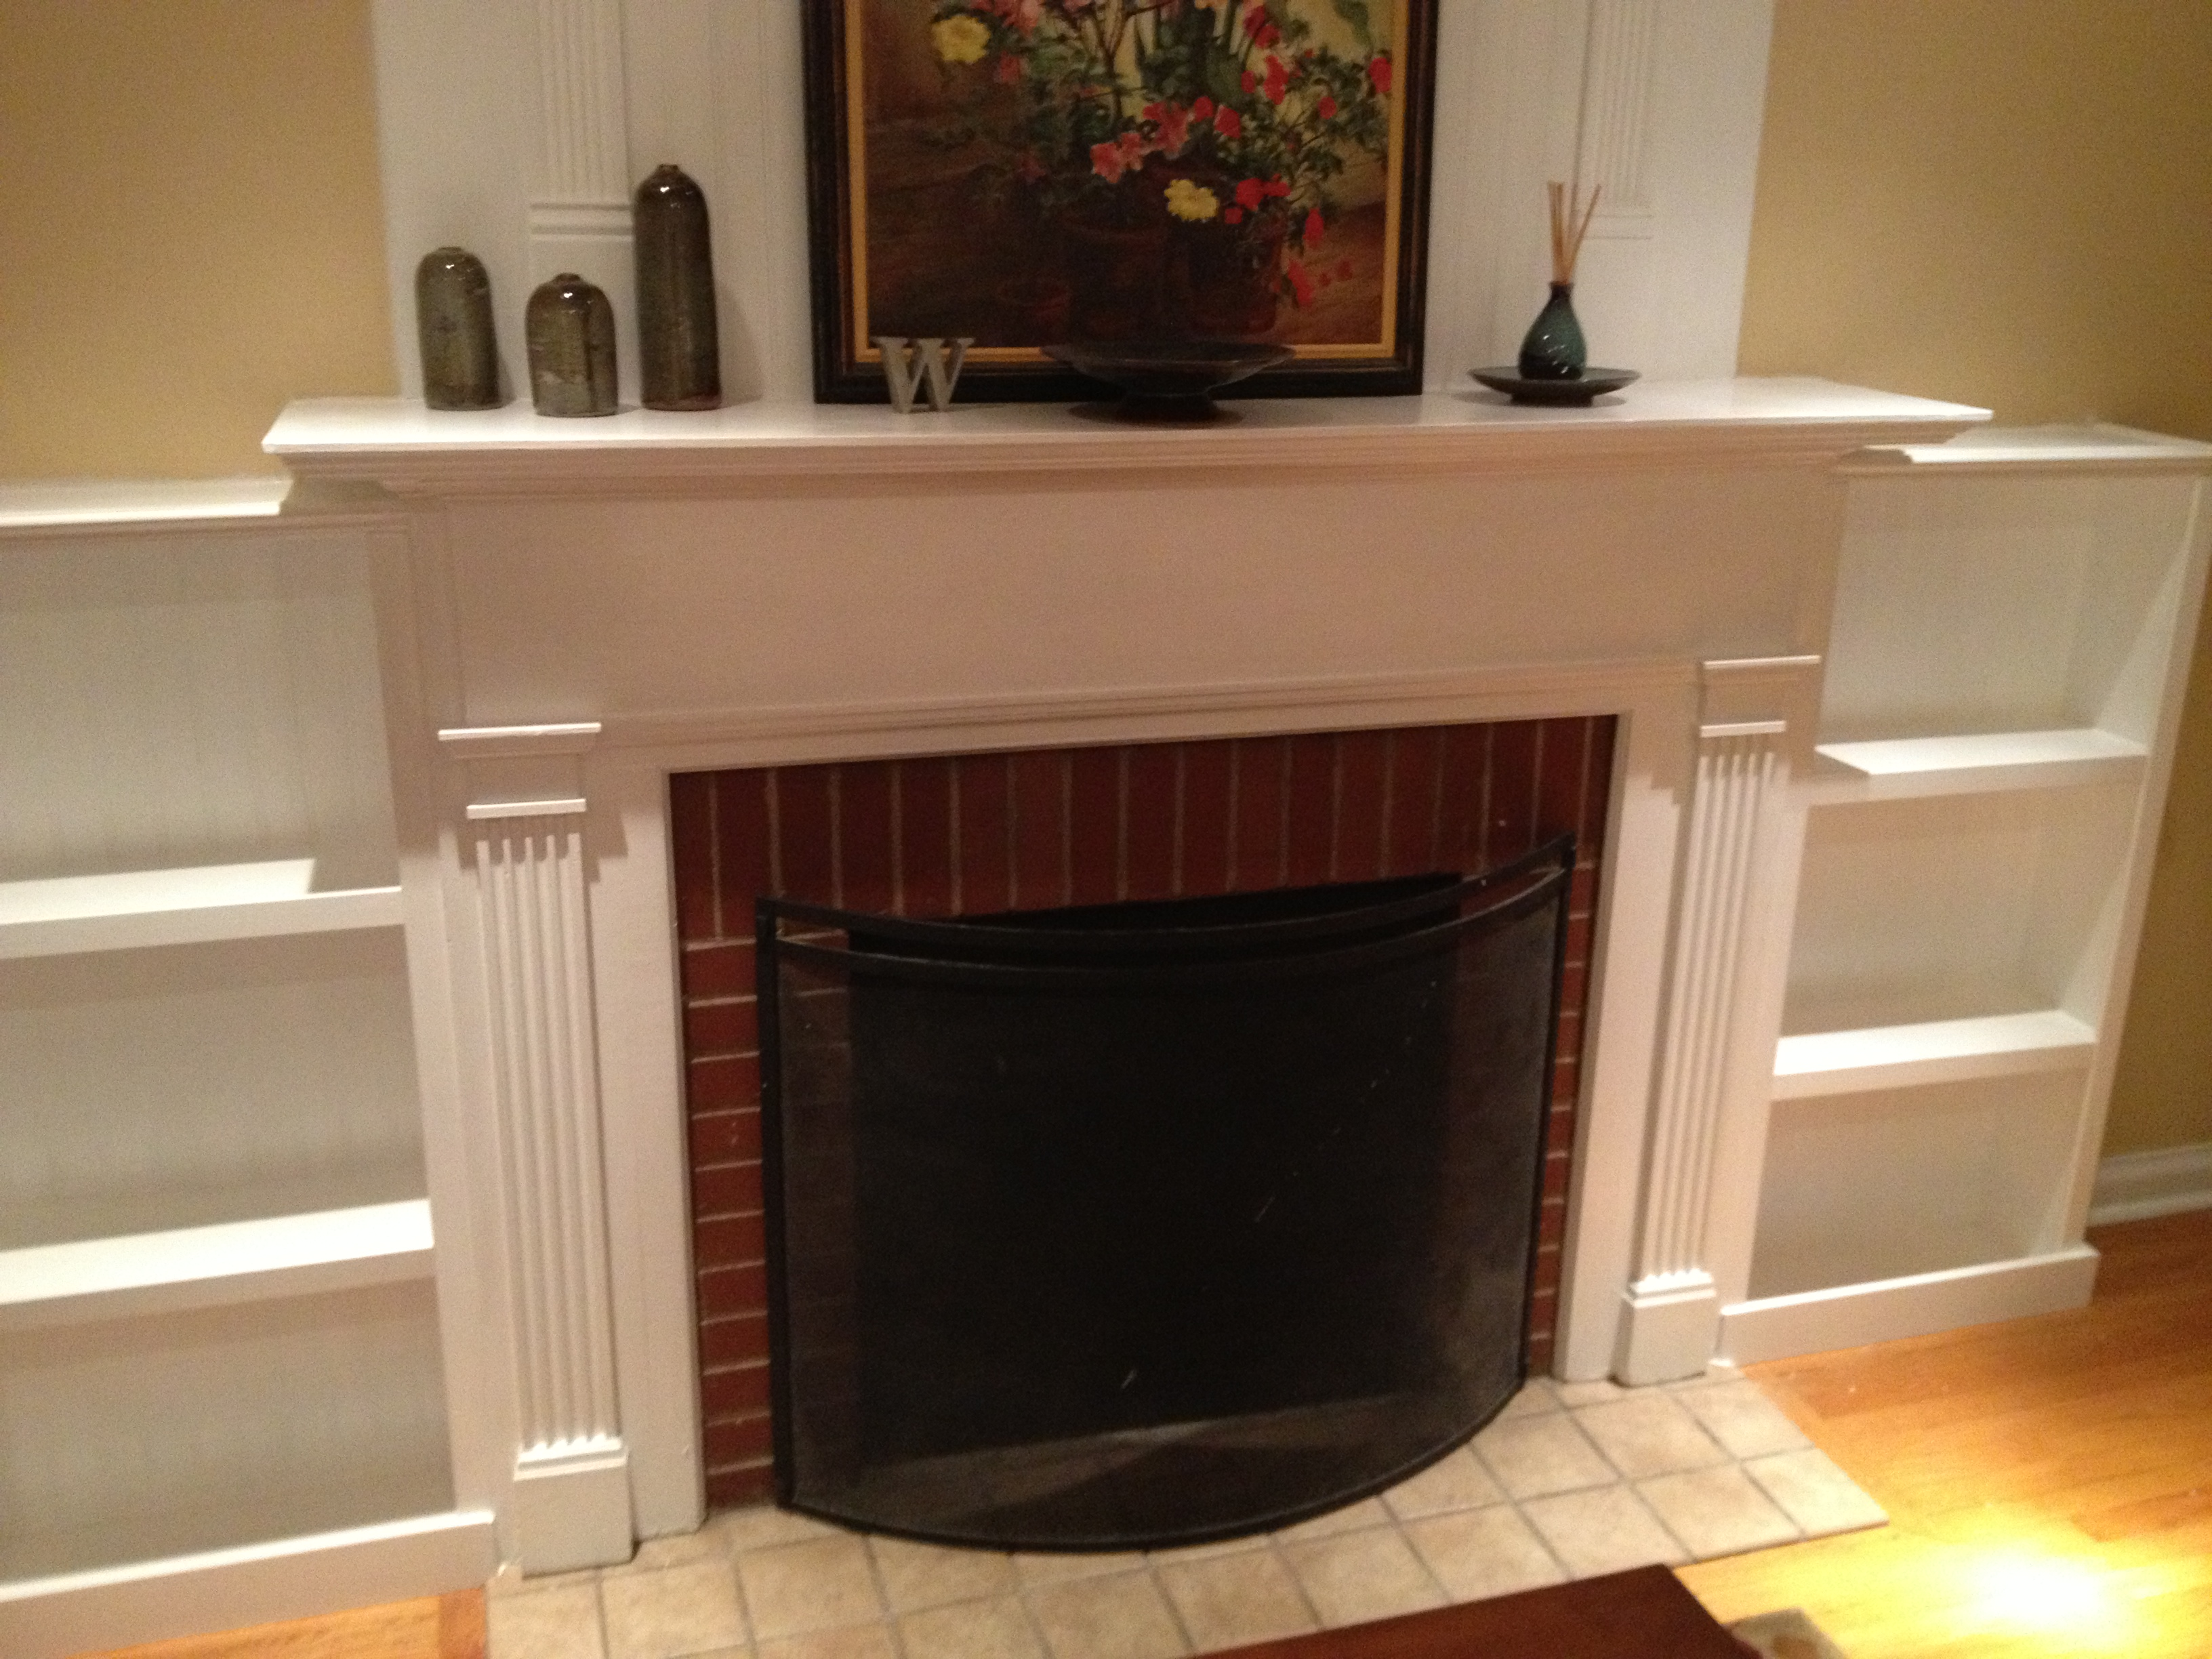 Ana white fireplace facelift built in bookcases diy projects fireplace facelift built in bookcases solutioingenieria Gallery